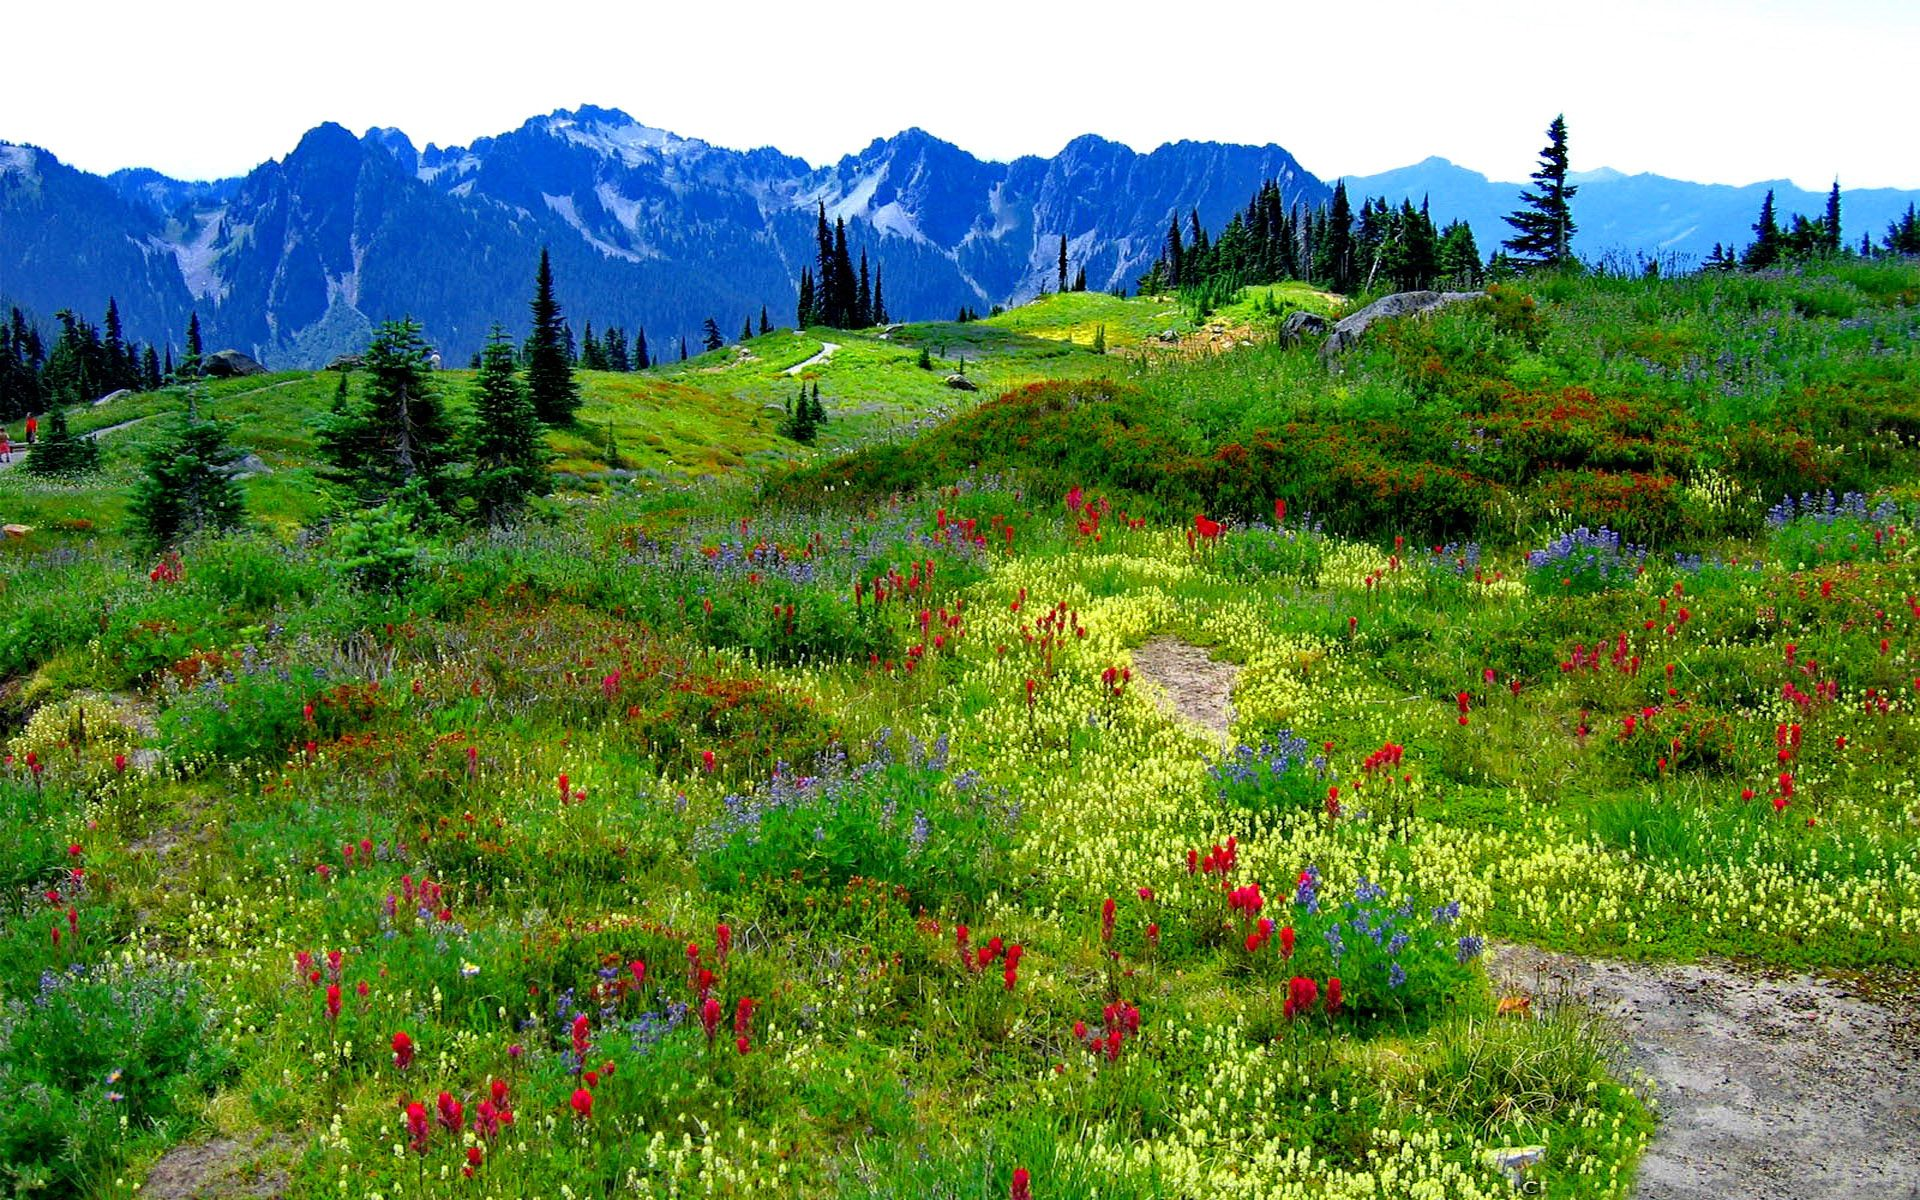 Green Mountain Meadow With Flowers In Multiple Colors Mountains With Snow Wallpaper For Desktop Green Mountain Mountain Wallpaper Meadow